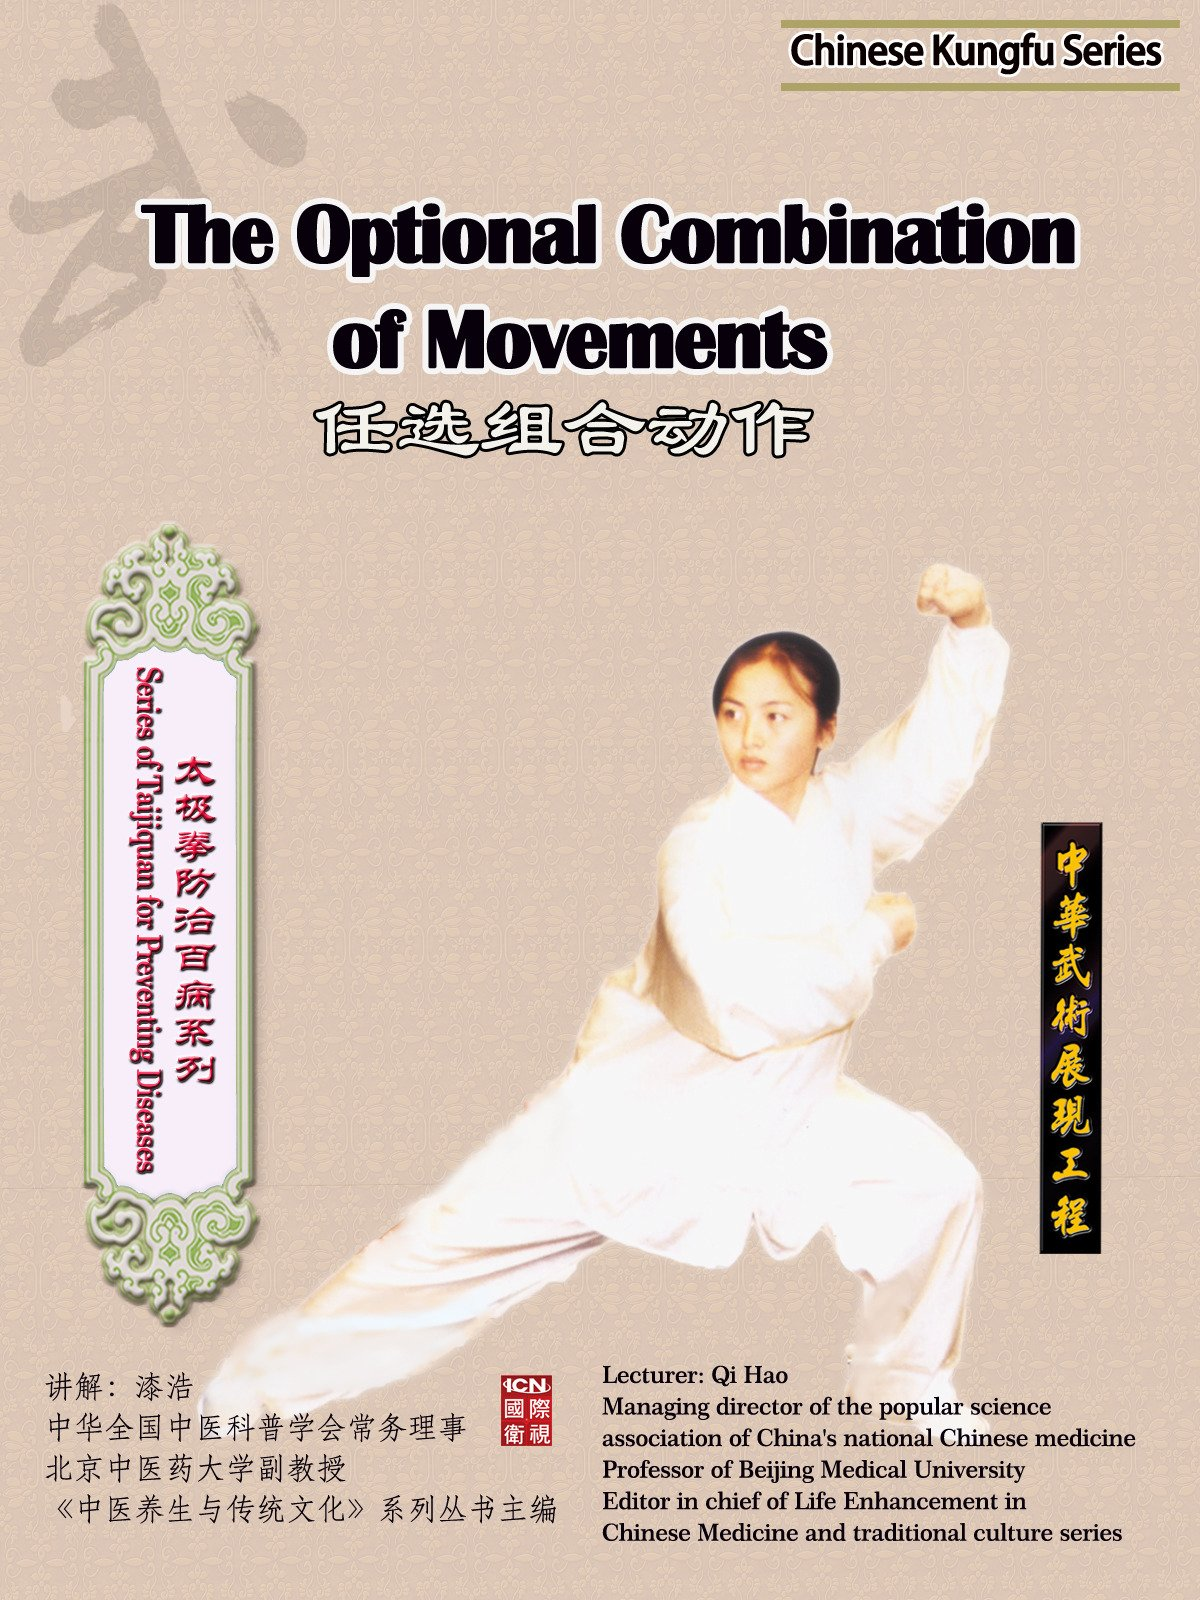 Series of Taijiquan for Preventing Diseases-The Optional Combination of Movements on Amazon Prime Instant Video UK